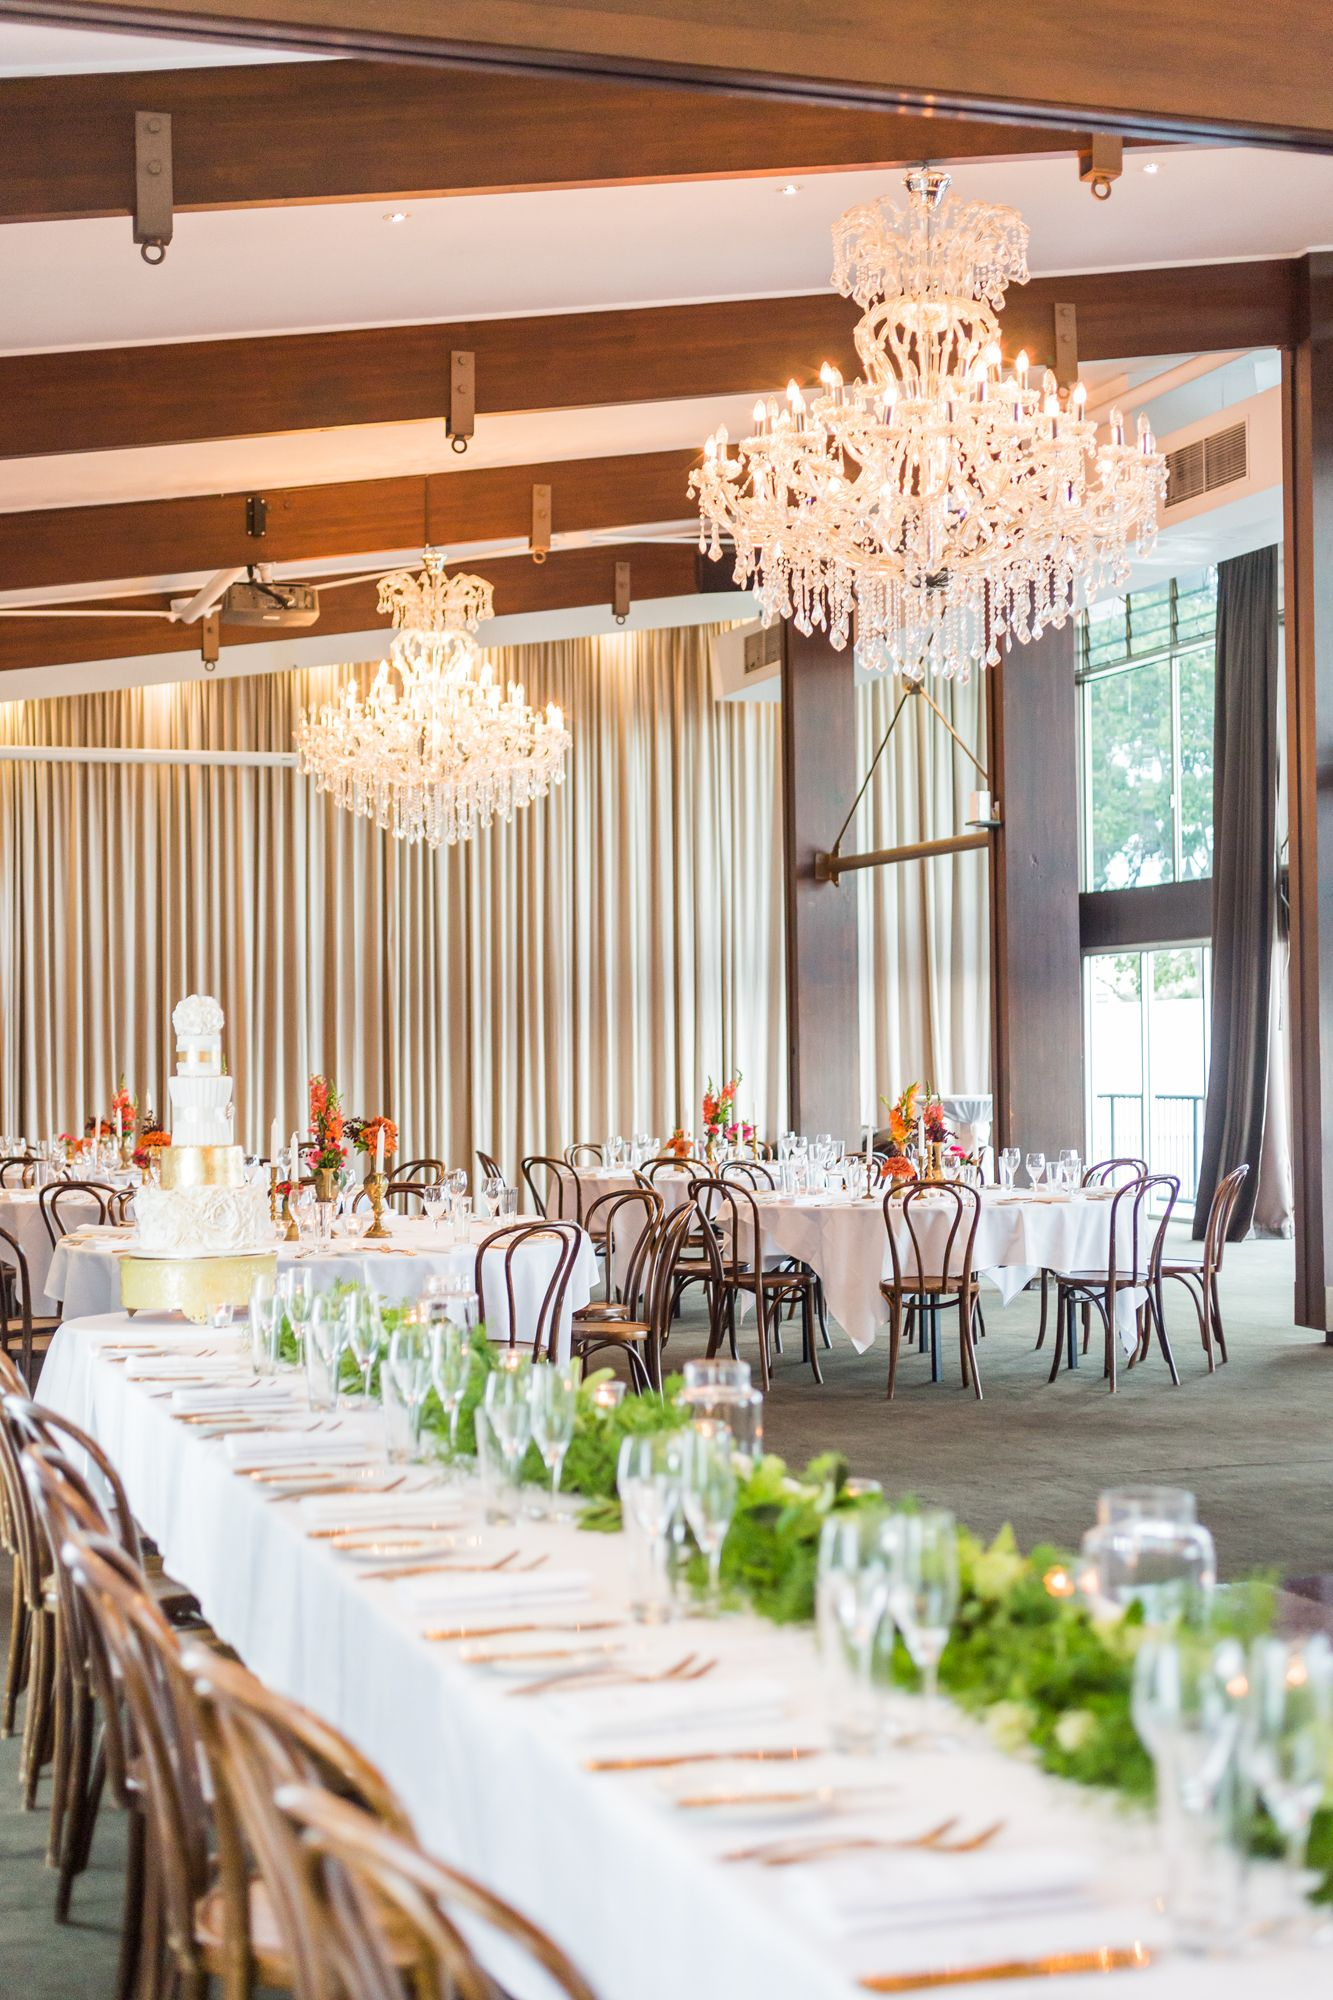 wedding venues north queensland%0A Victoria Park Brisbane   Wedding Venue   Ballroom   For a wedding space  with style and grace  our grand ballroom is renowned for its Victorian char u